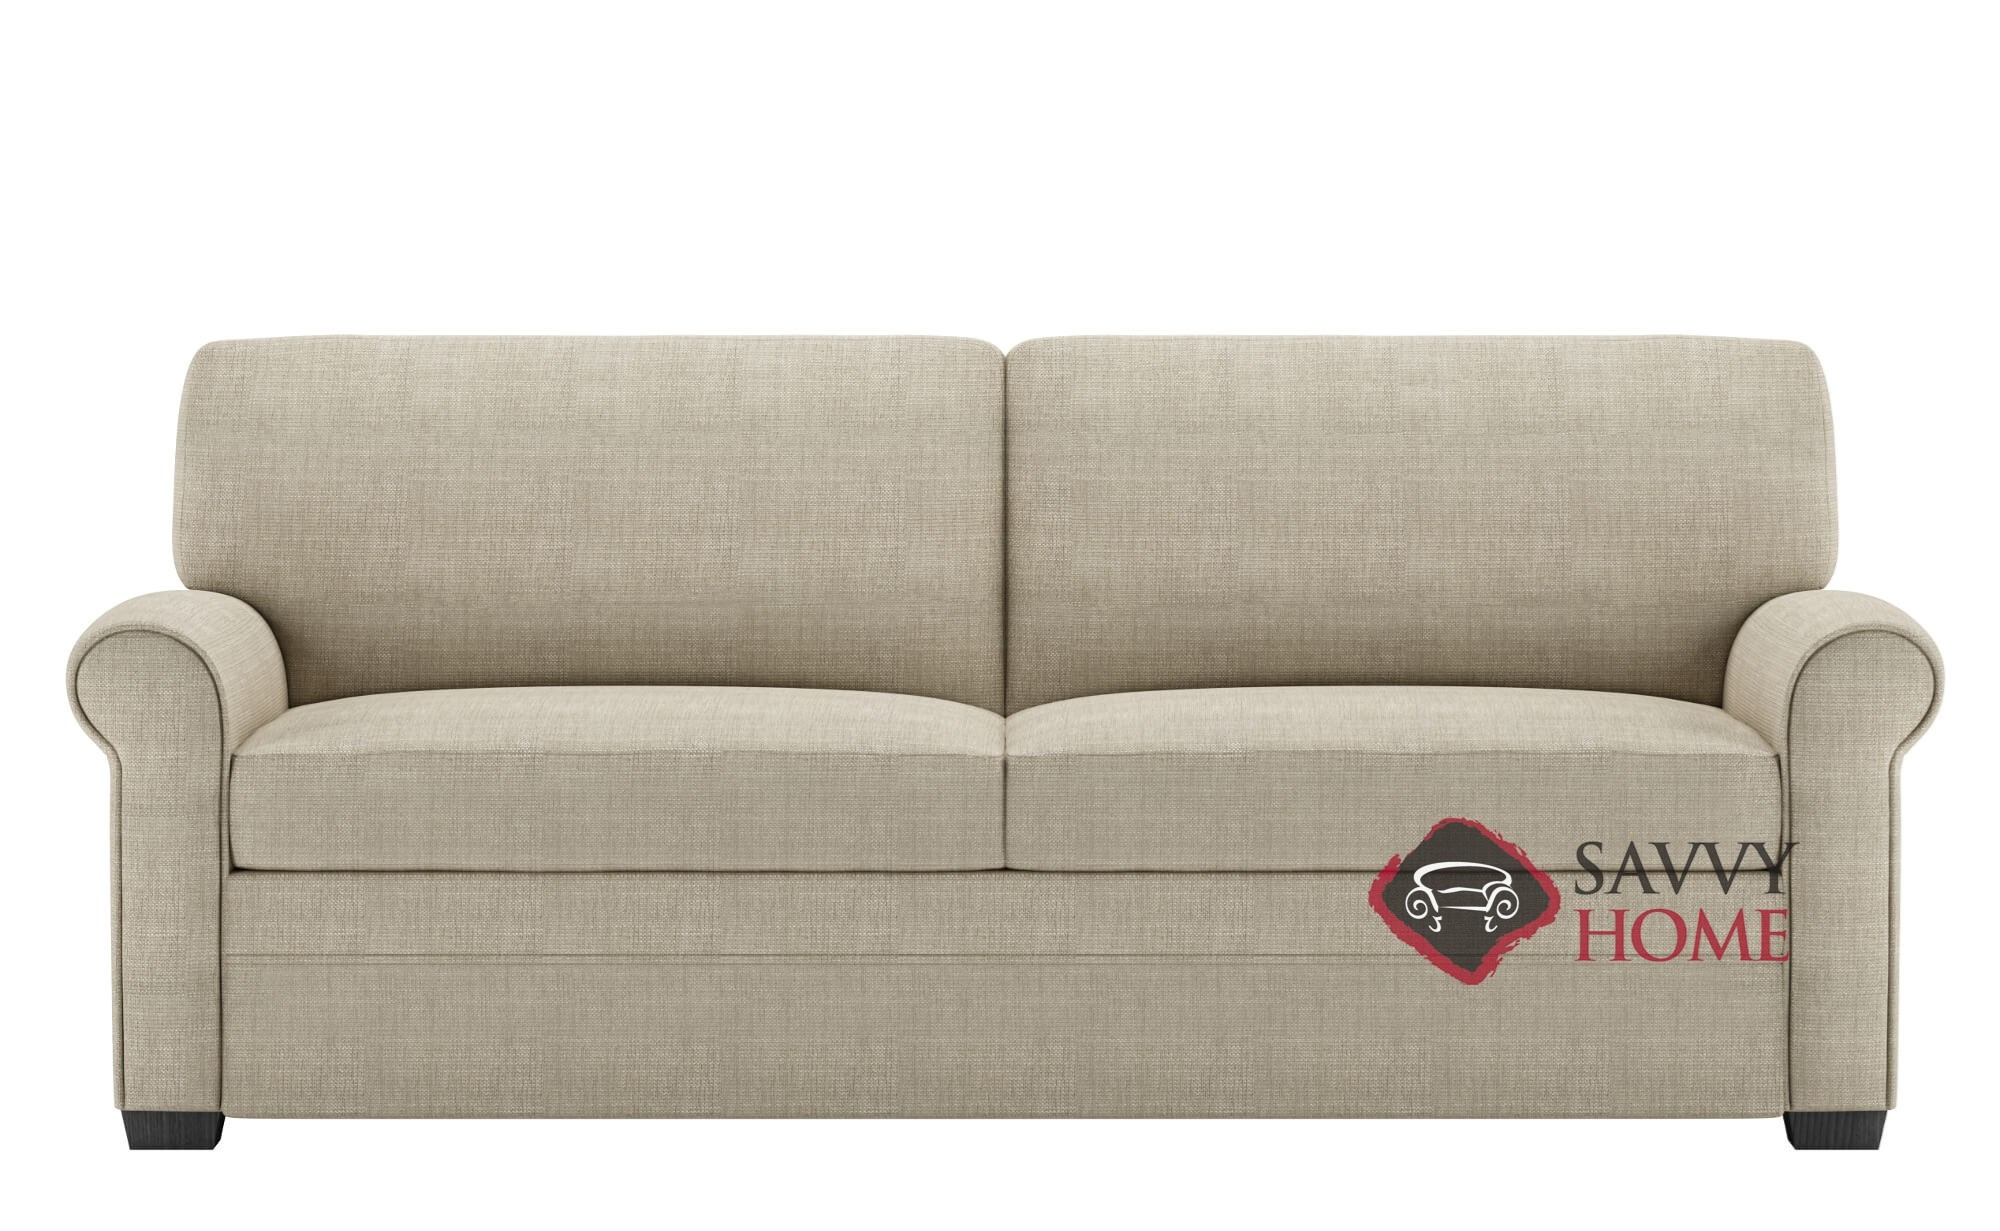 Sleeper Sofa Quick Delivery American Leather Comfort Sleepers Comfort Sleepers By American